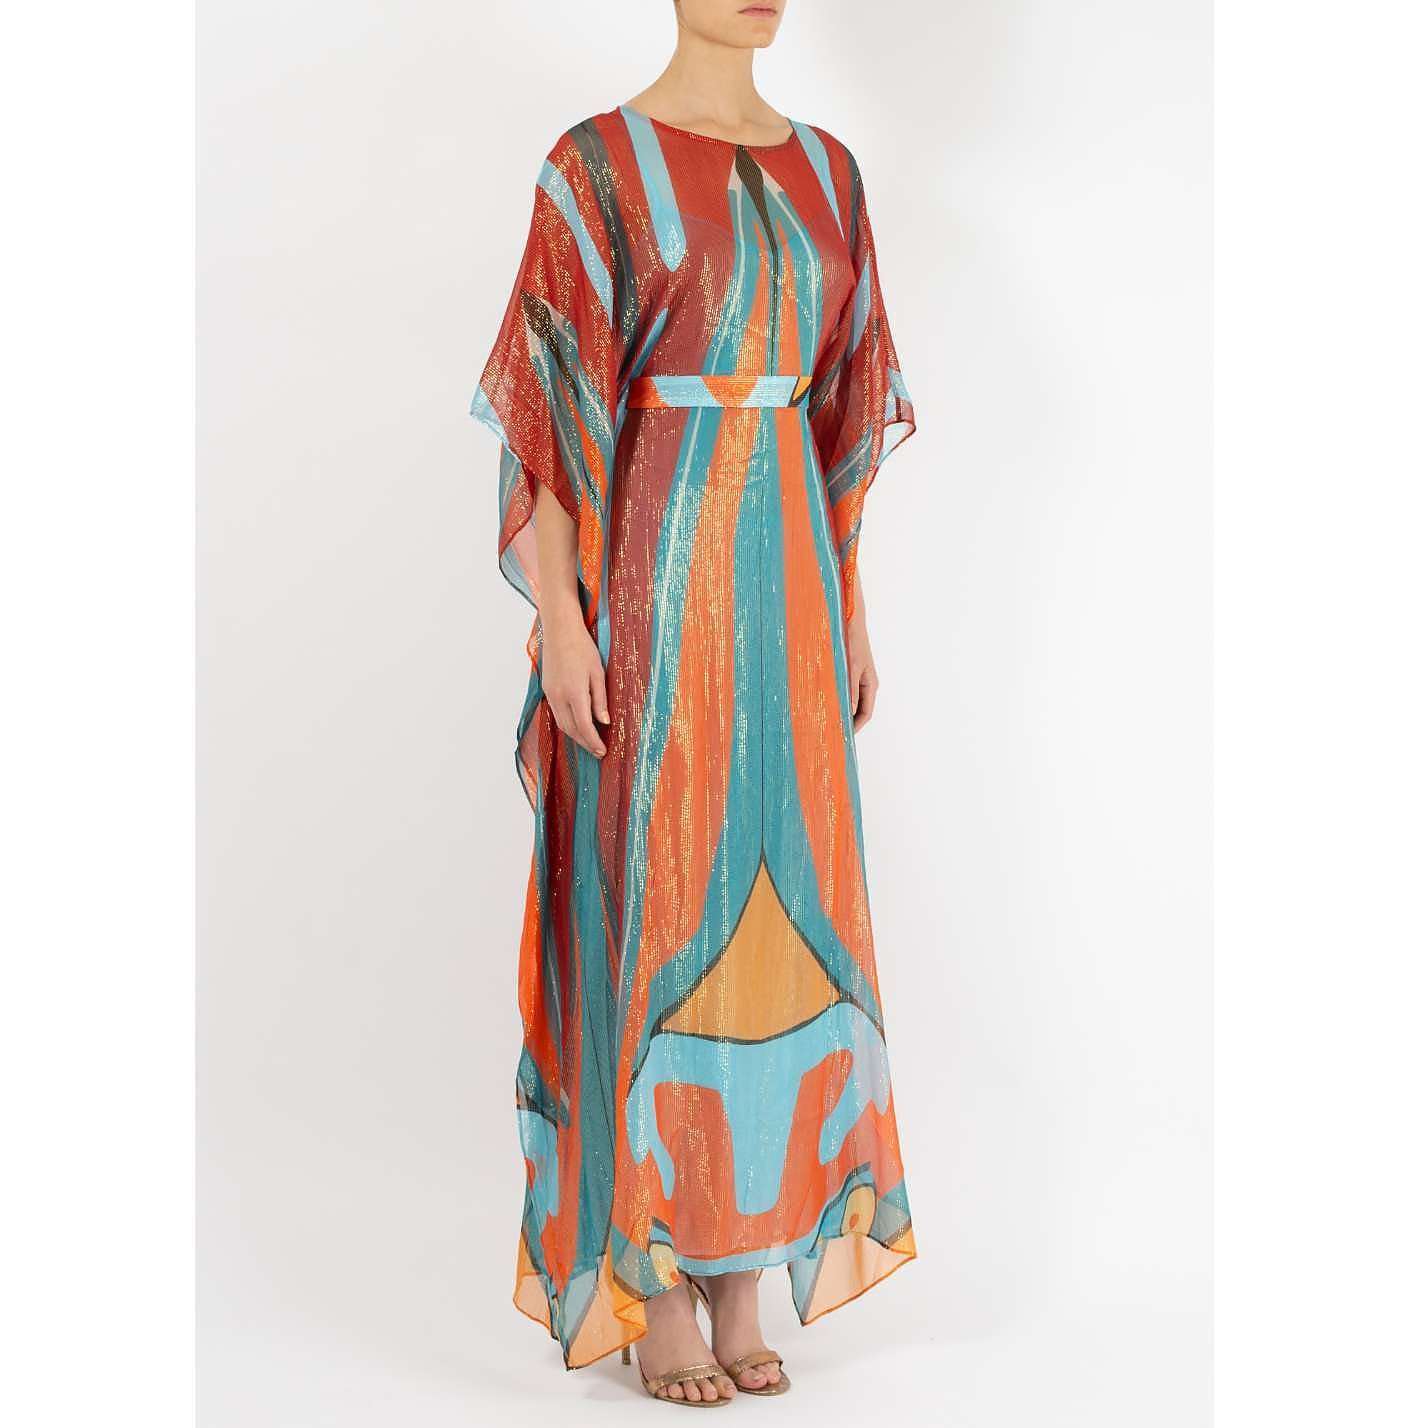 Dhela Spacebug Metallic Kaftan Dress